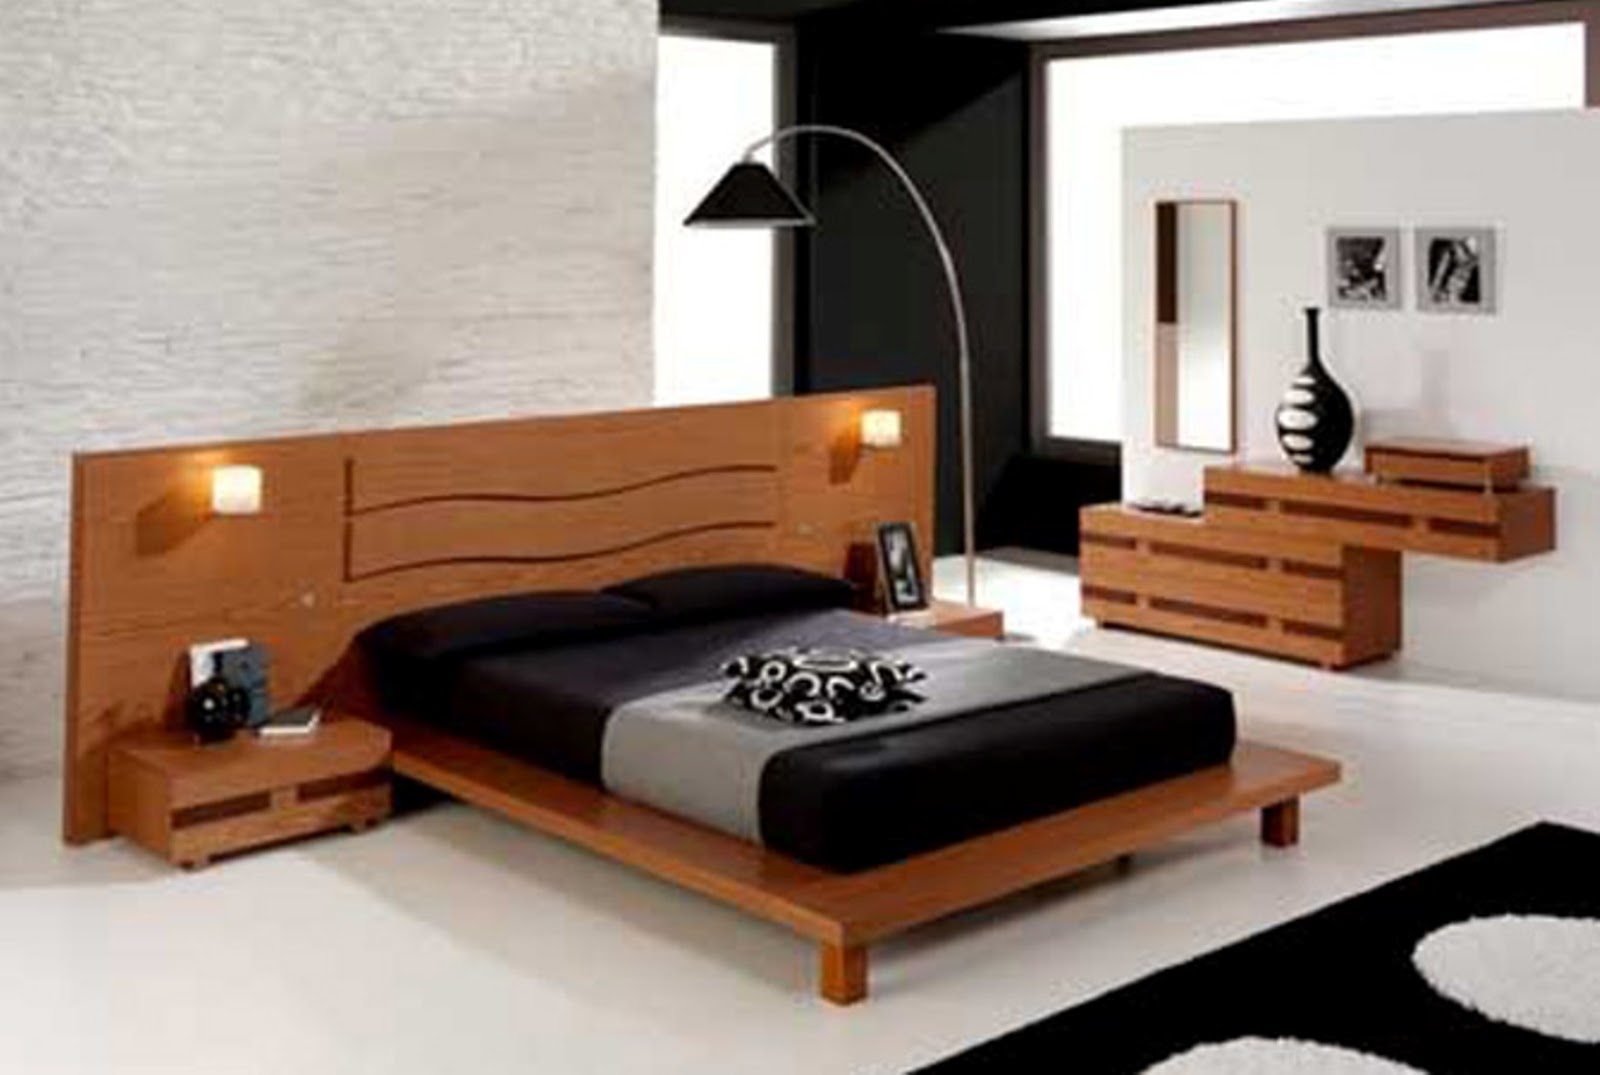 Catalogue s works 2015 autos post for Latest bed design images